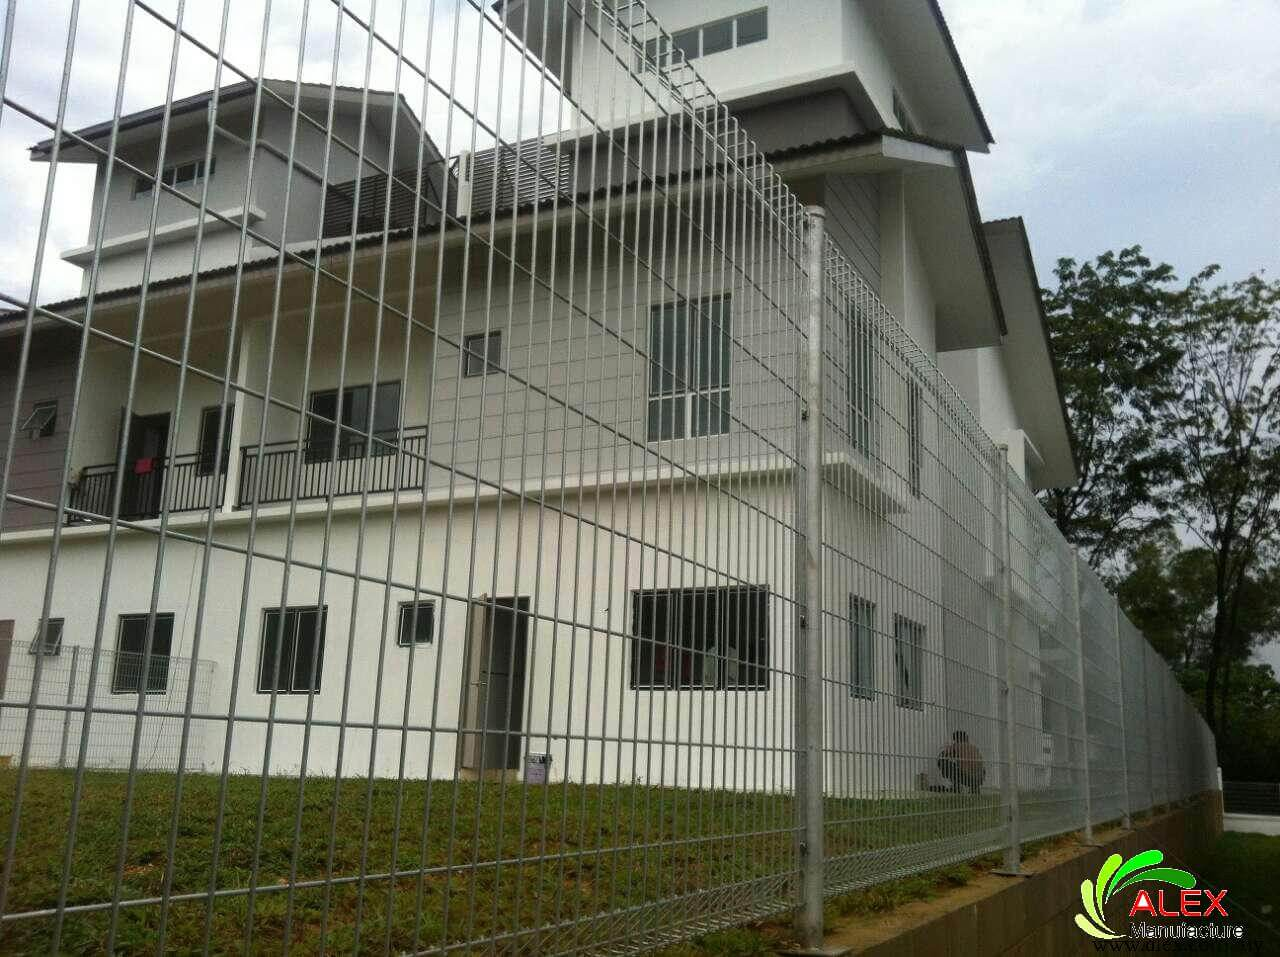 Brc fencing mesh panel security wire